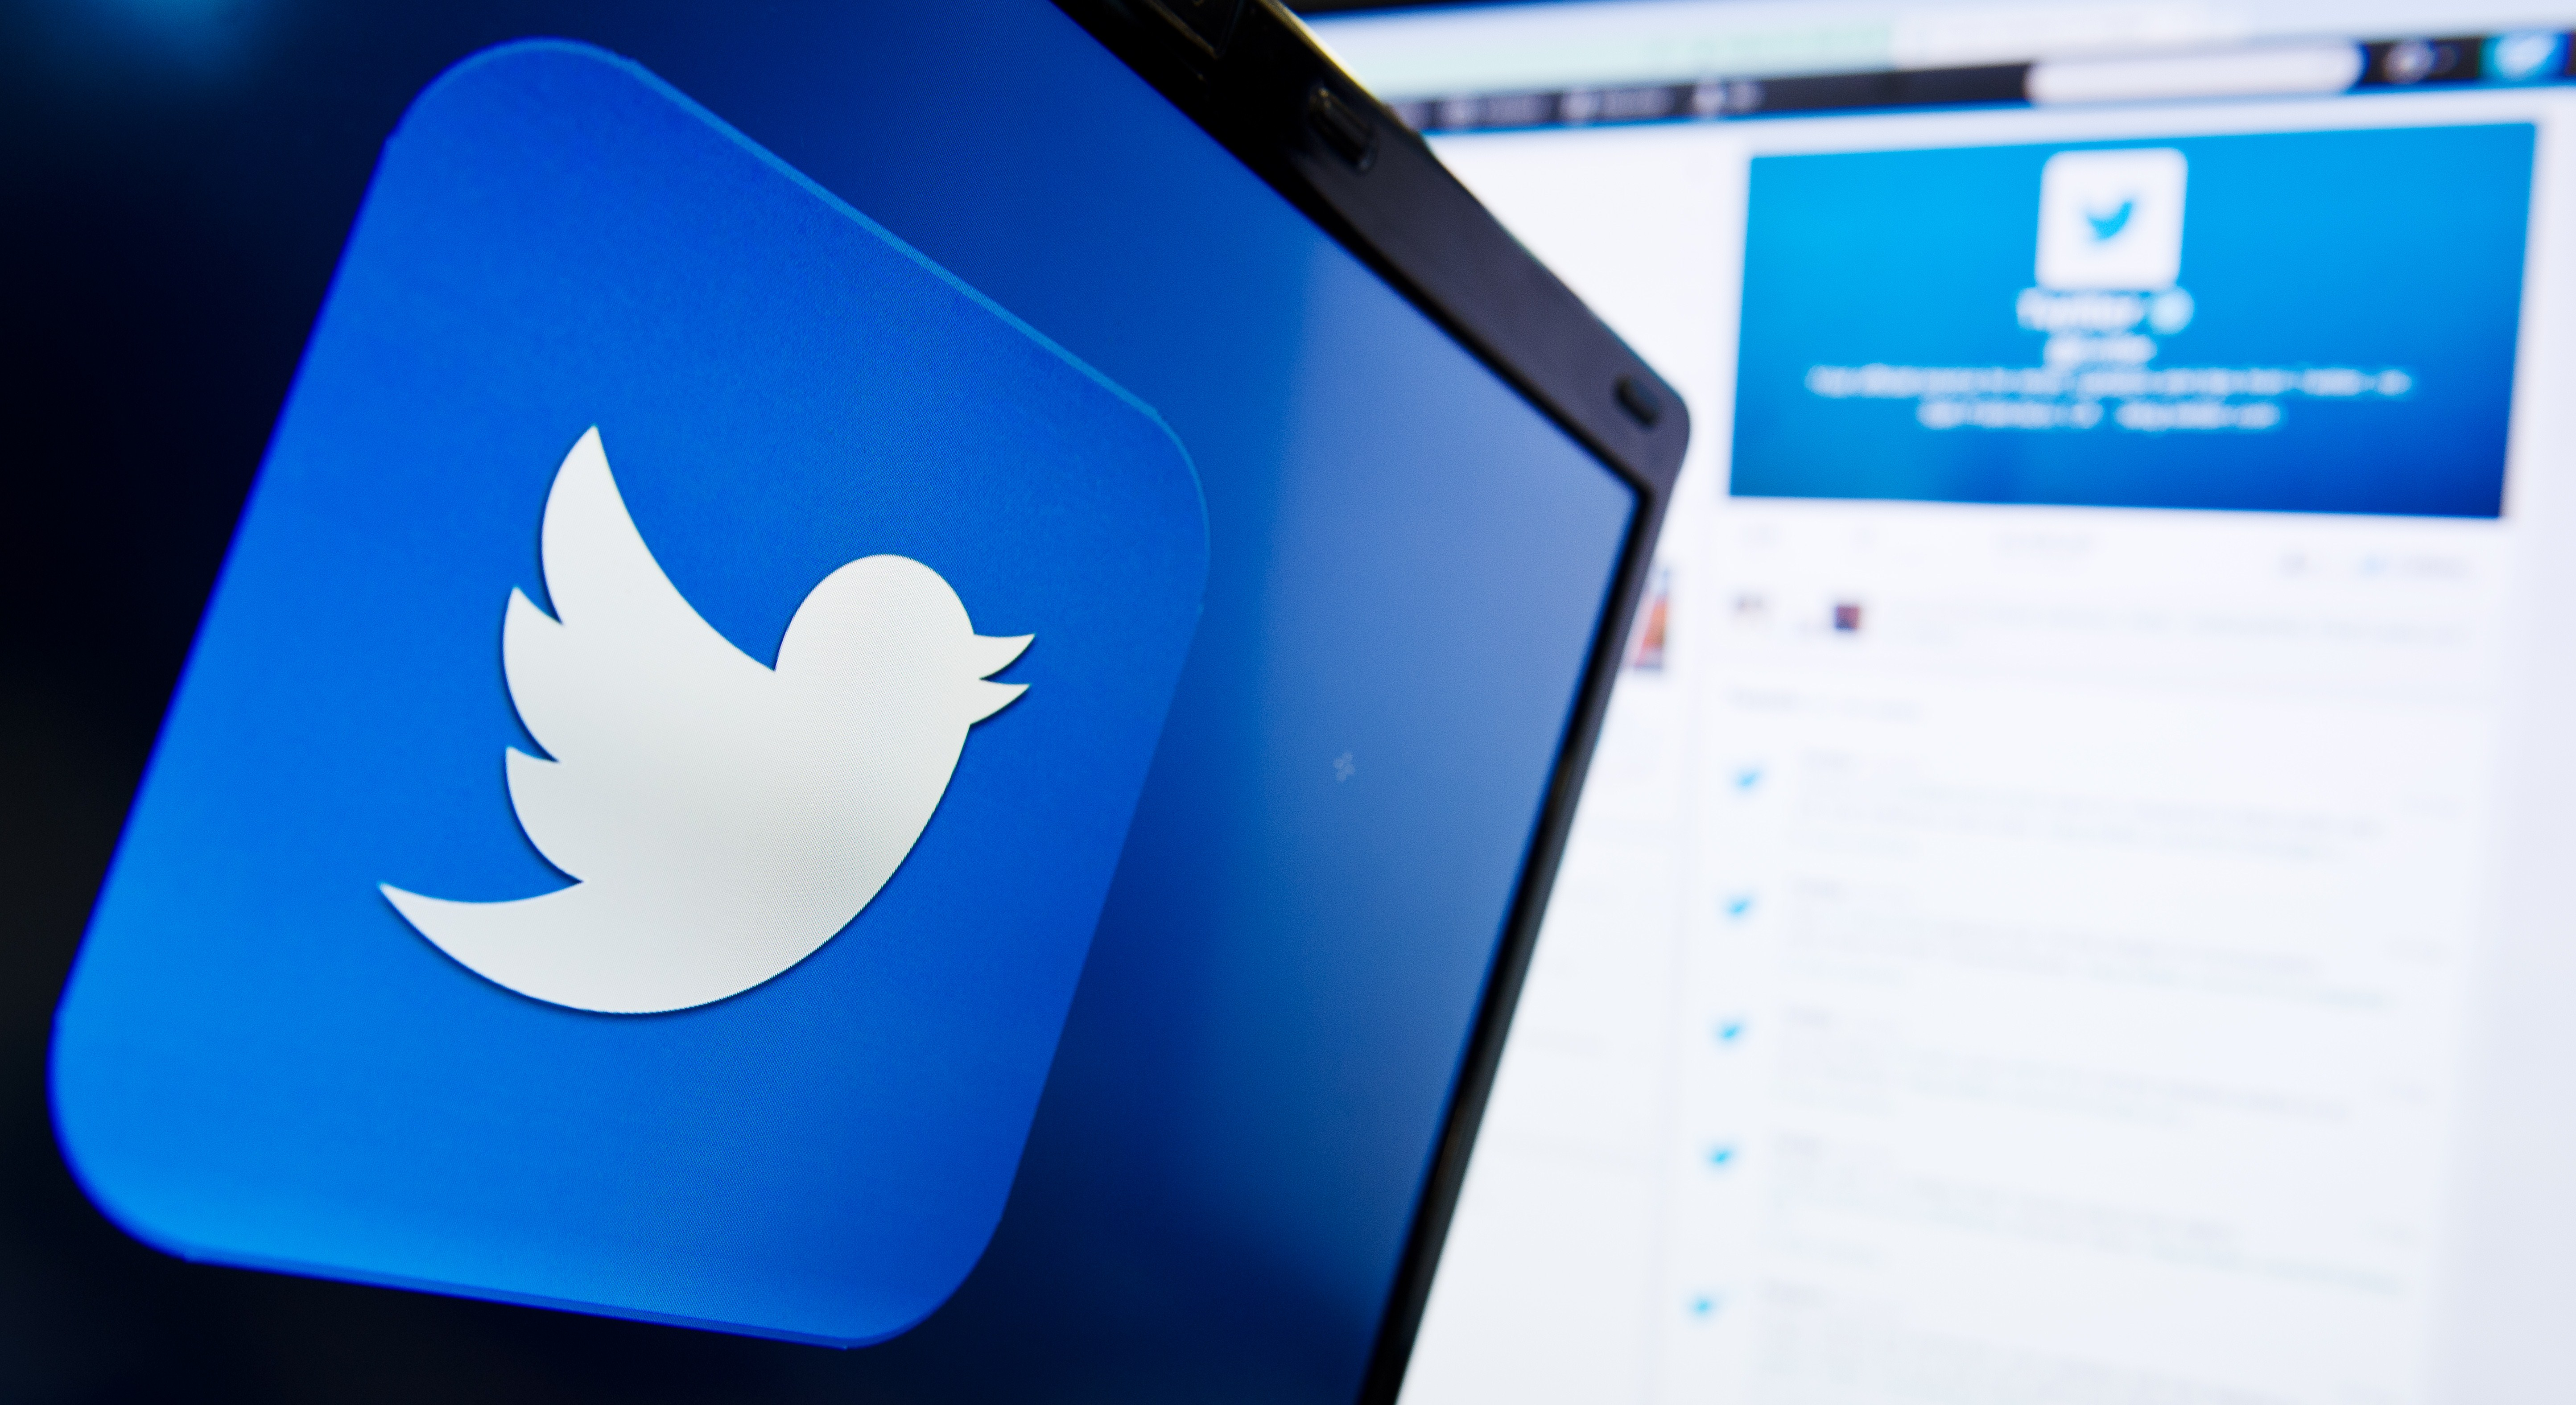 Twitter Investigating Missing Tweets From Timeline